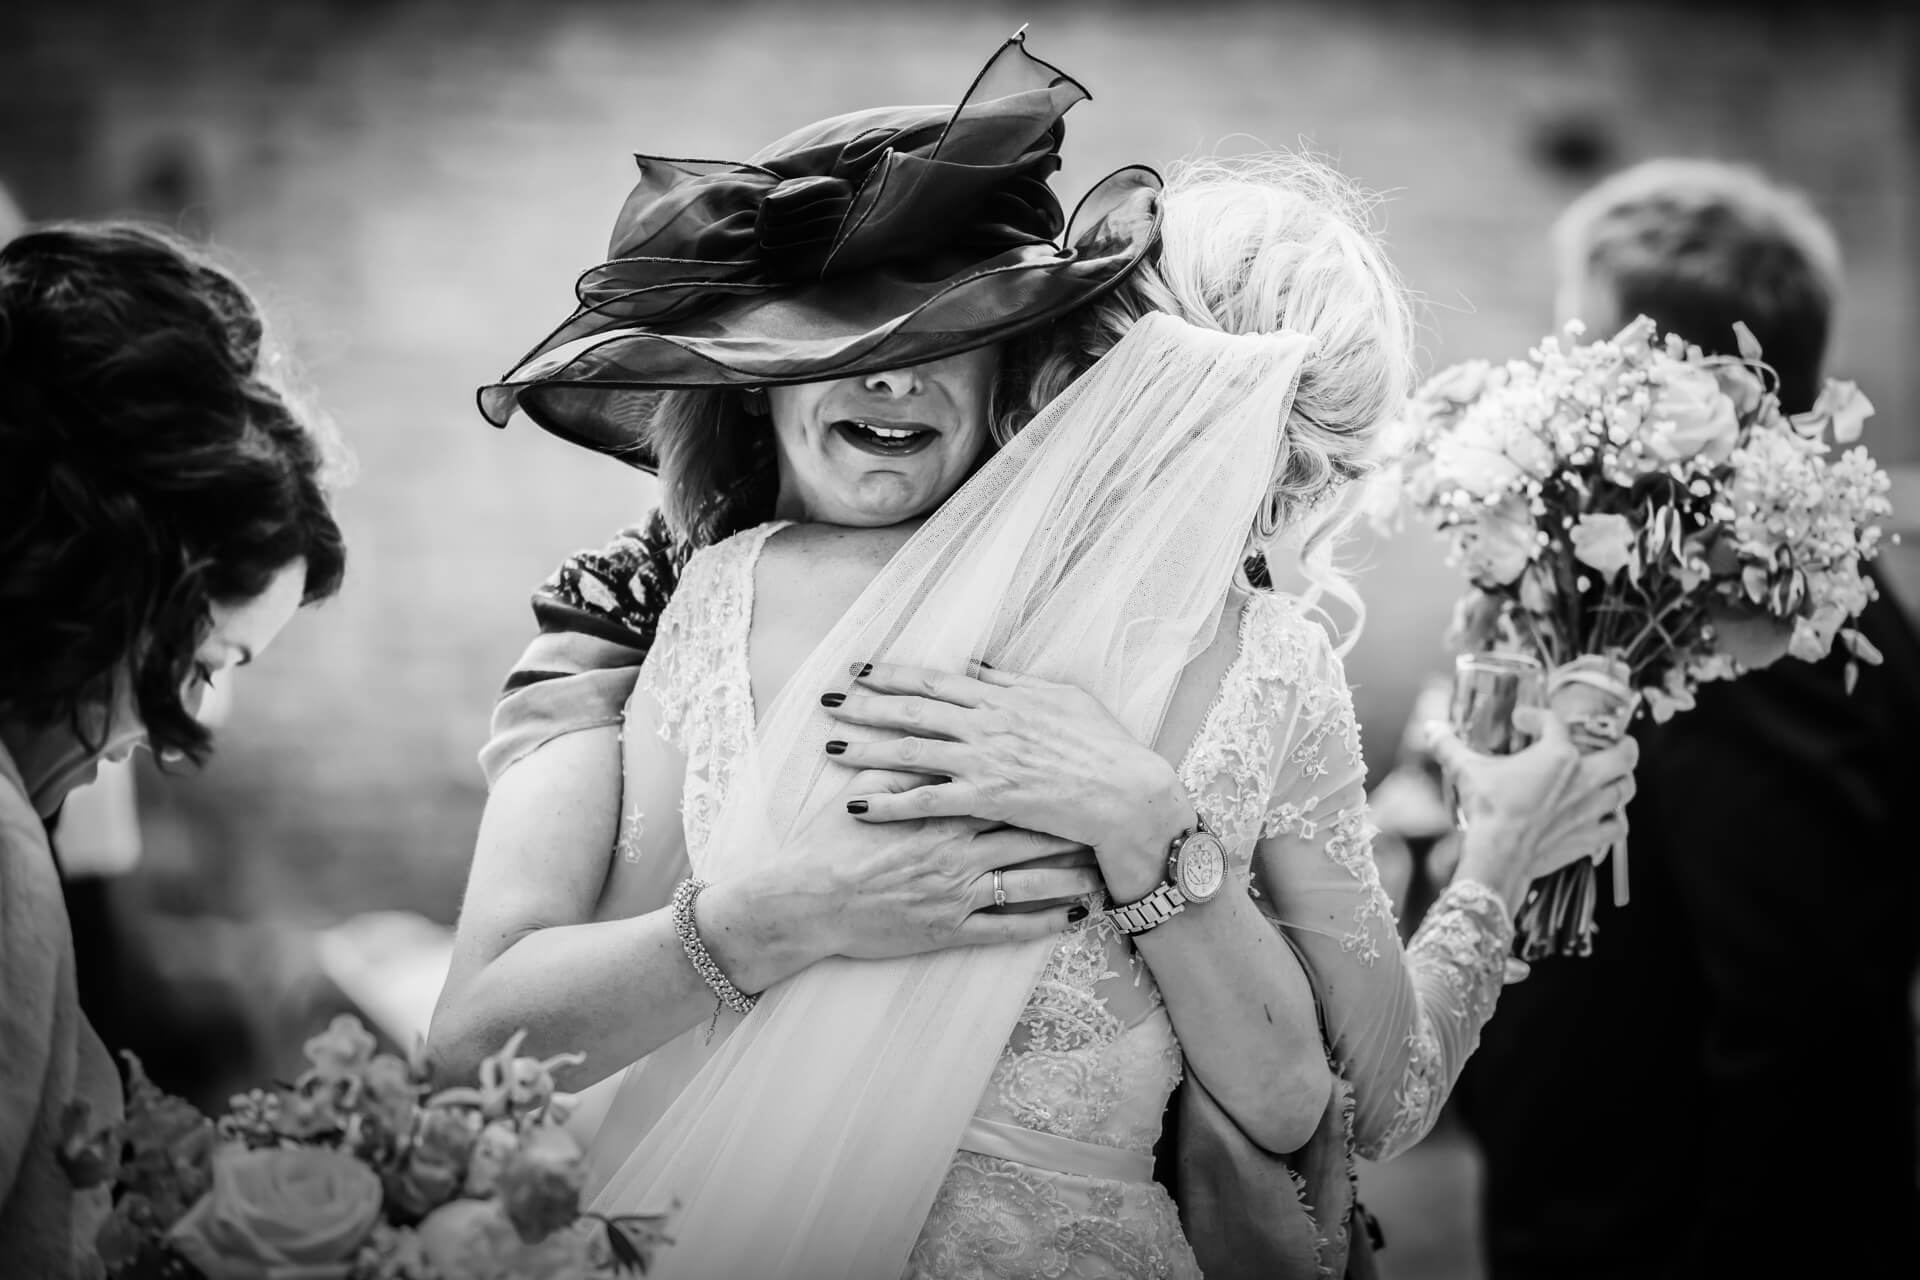 Brides friend giving the bride a big hug